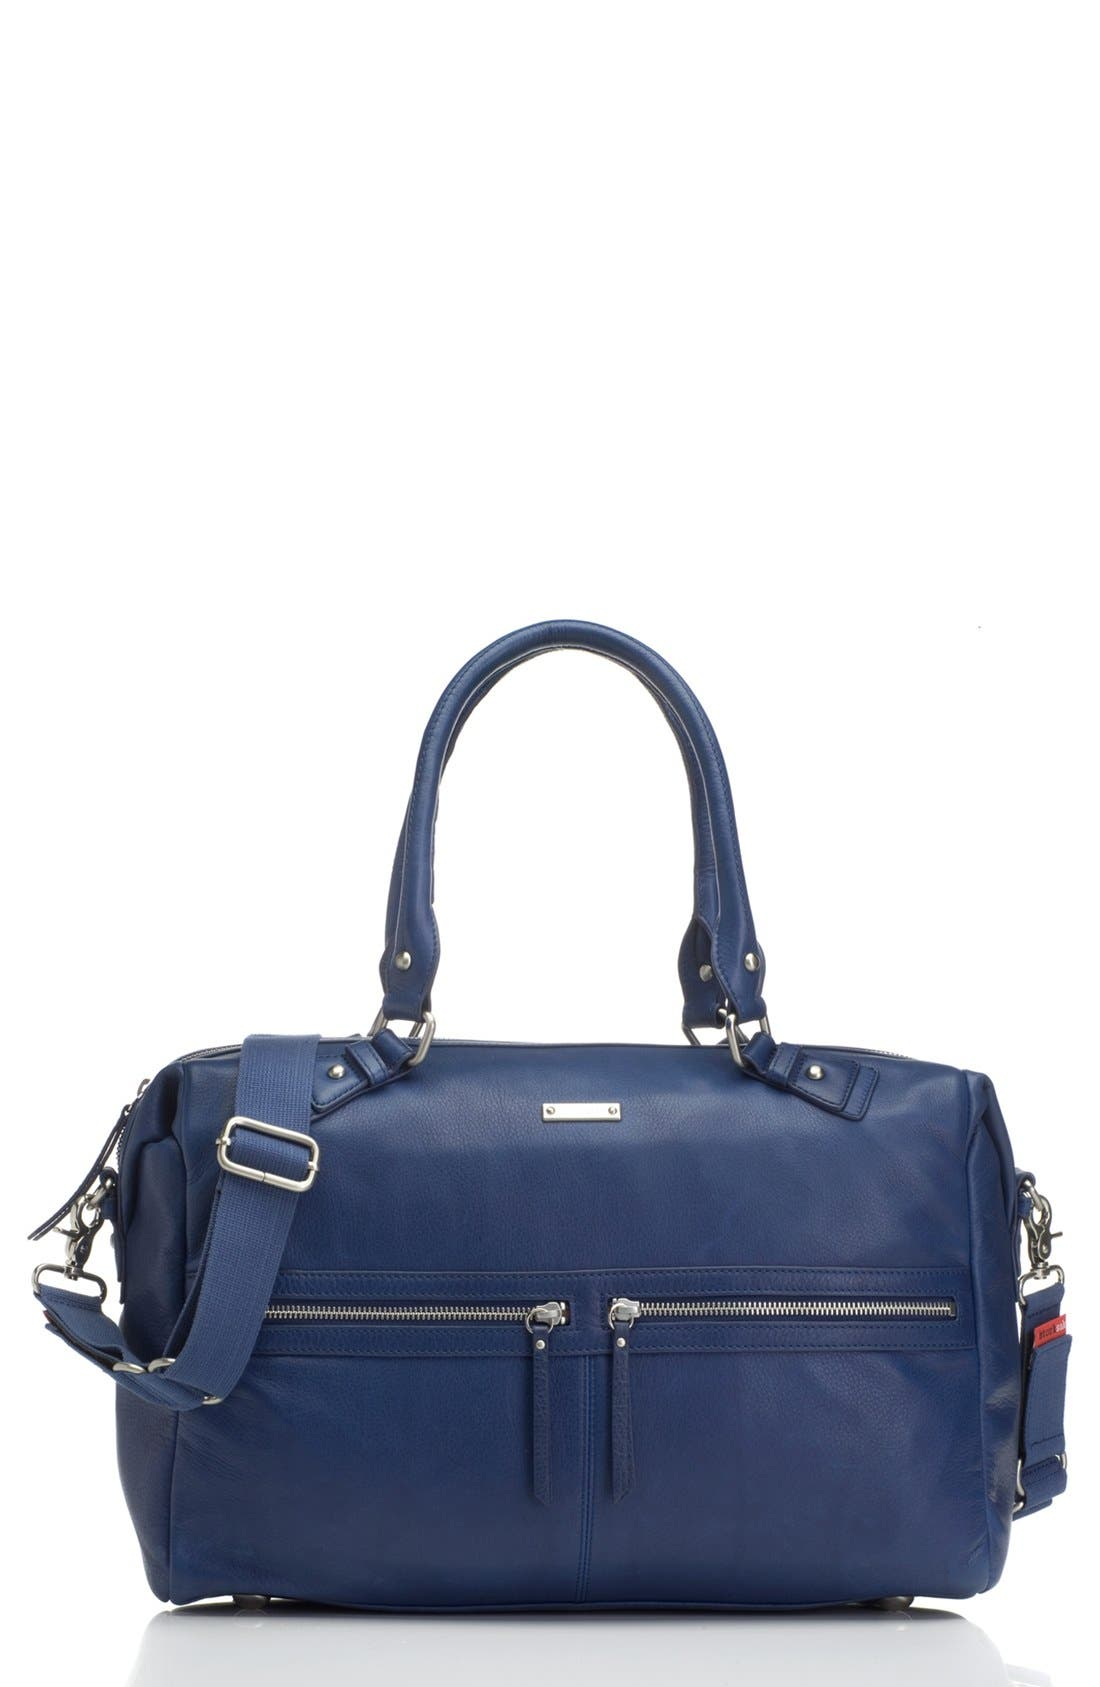 Main Image - Storksak 'Caroline' Leather Diaper Bag